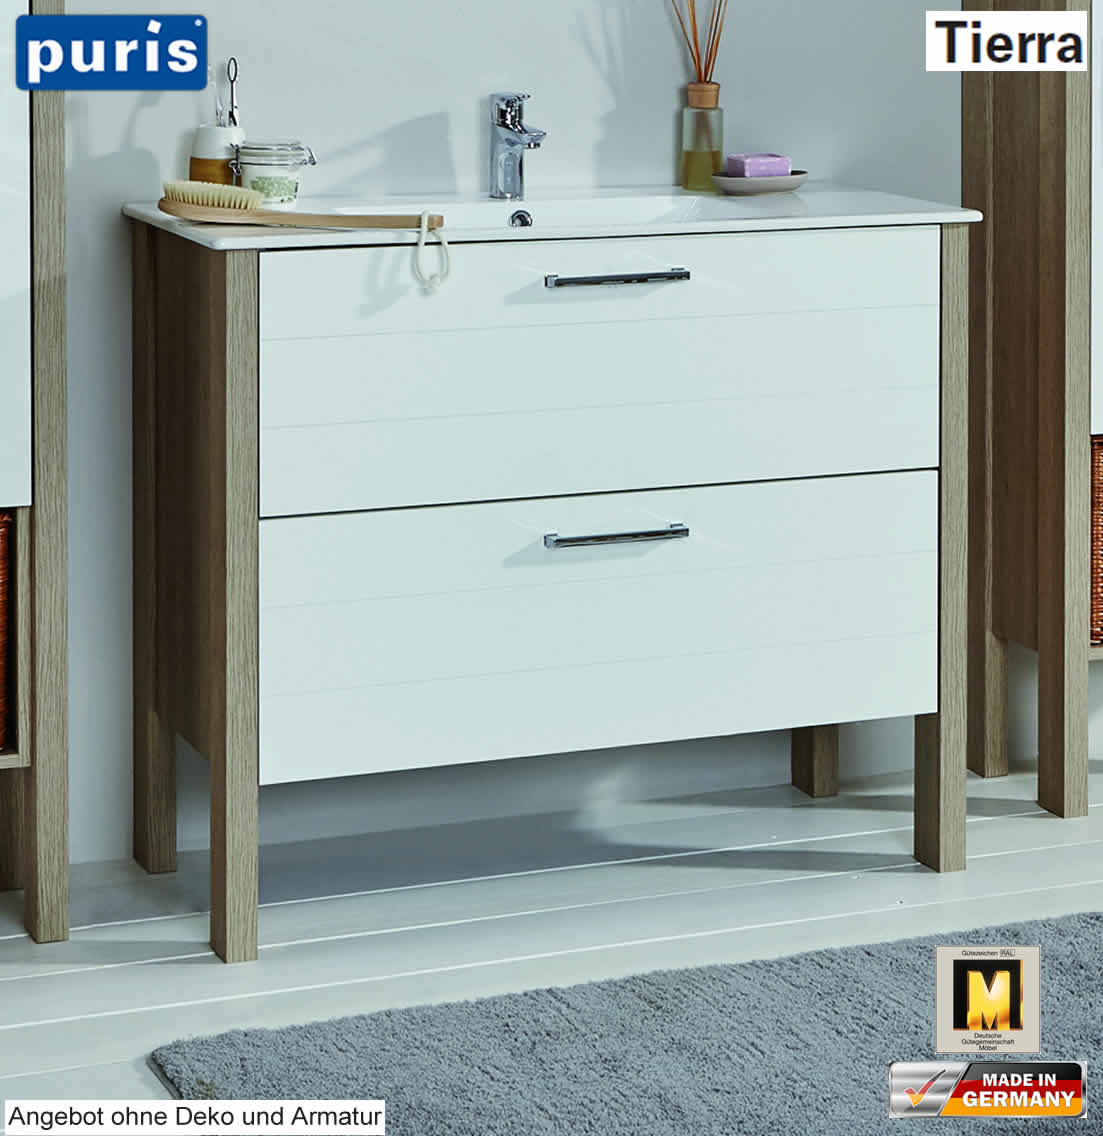 puris tierra waschtisch set 100 cm breite mit keramik wt. Black Bedroom Furniture Sets. Home Design Ideas